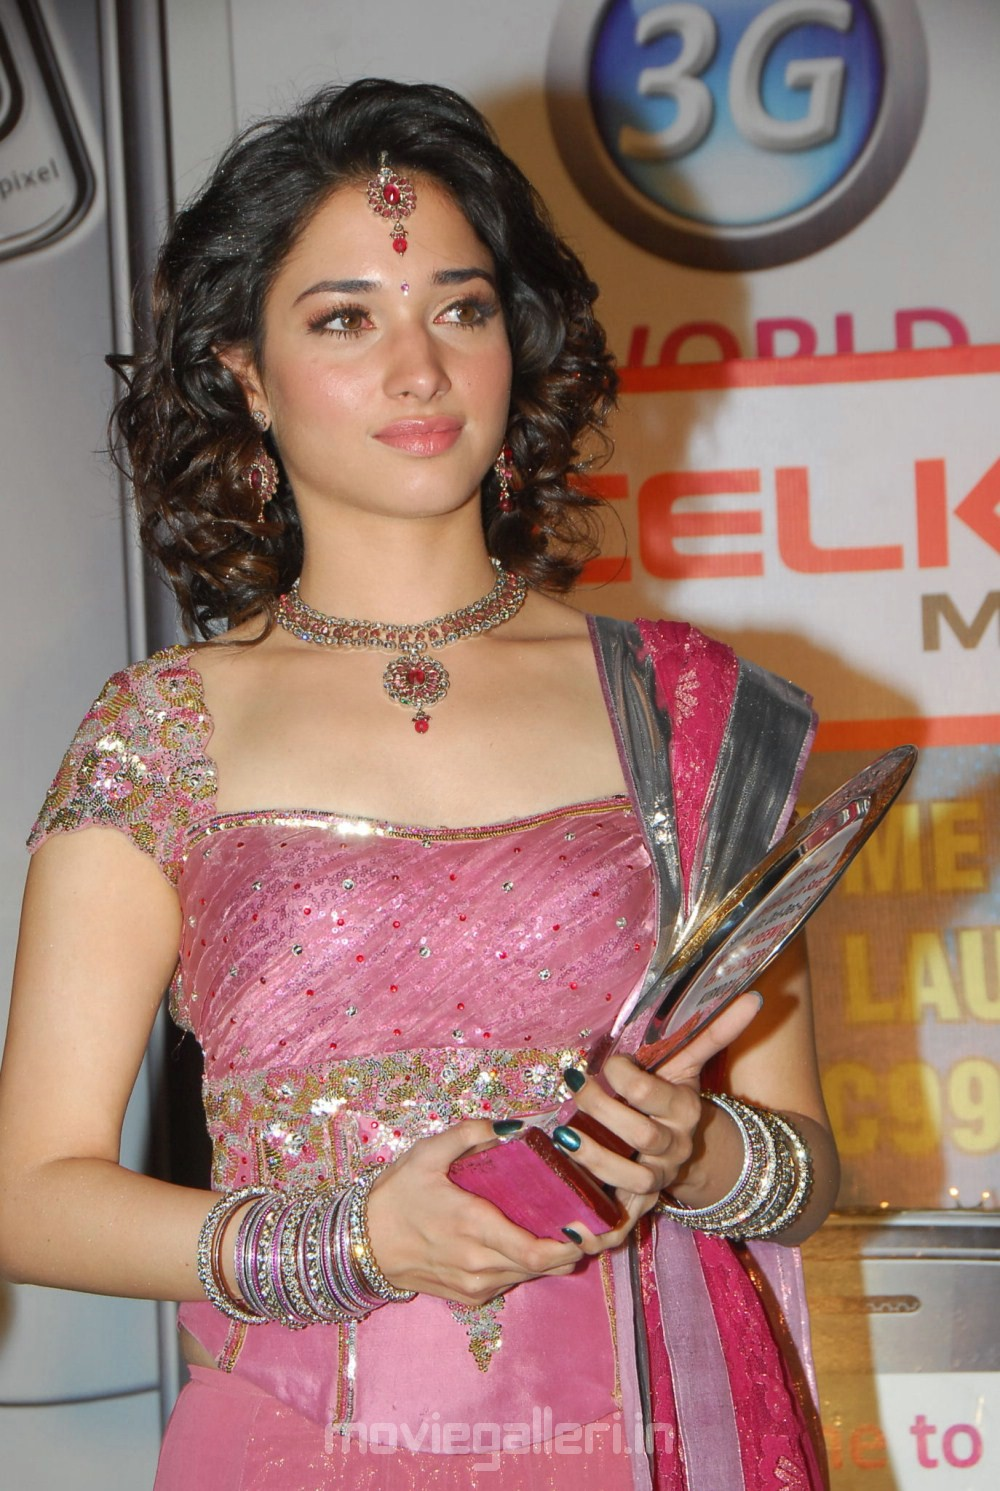 actress tamanna @ celkon c 999 3g mobile launch stills | new movie